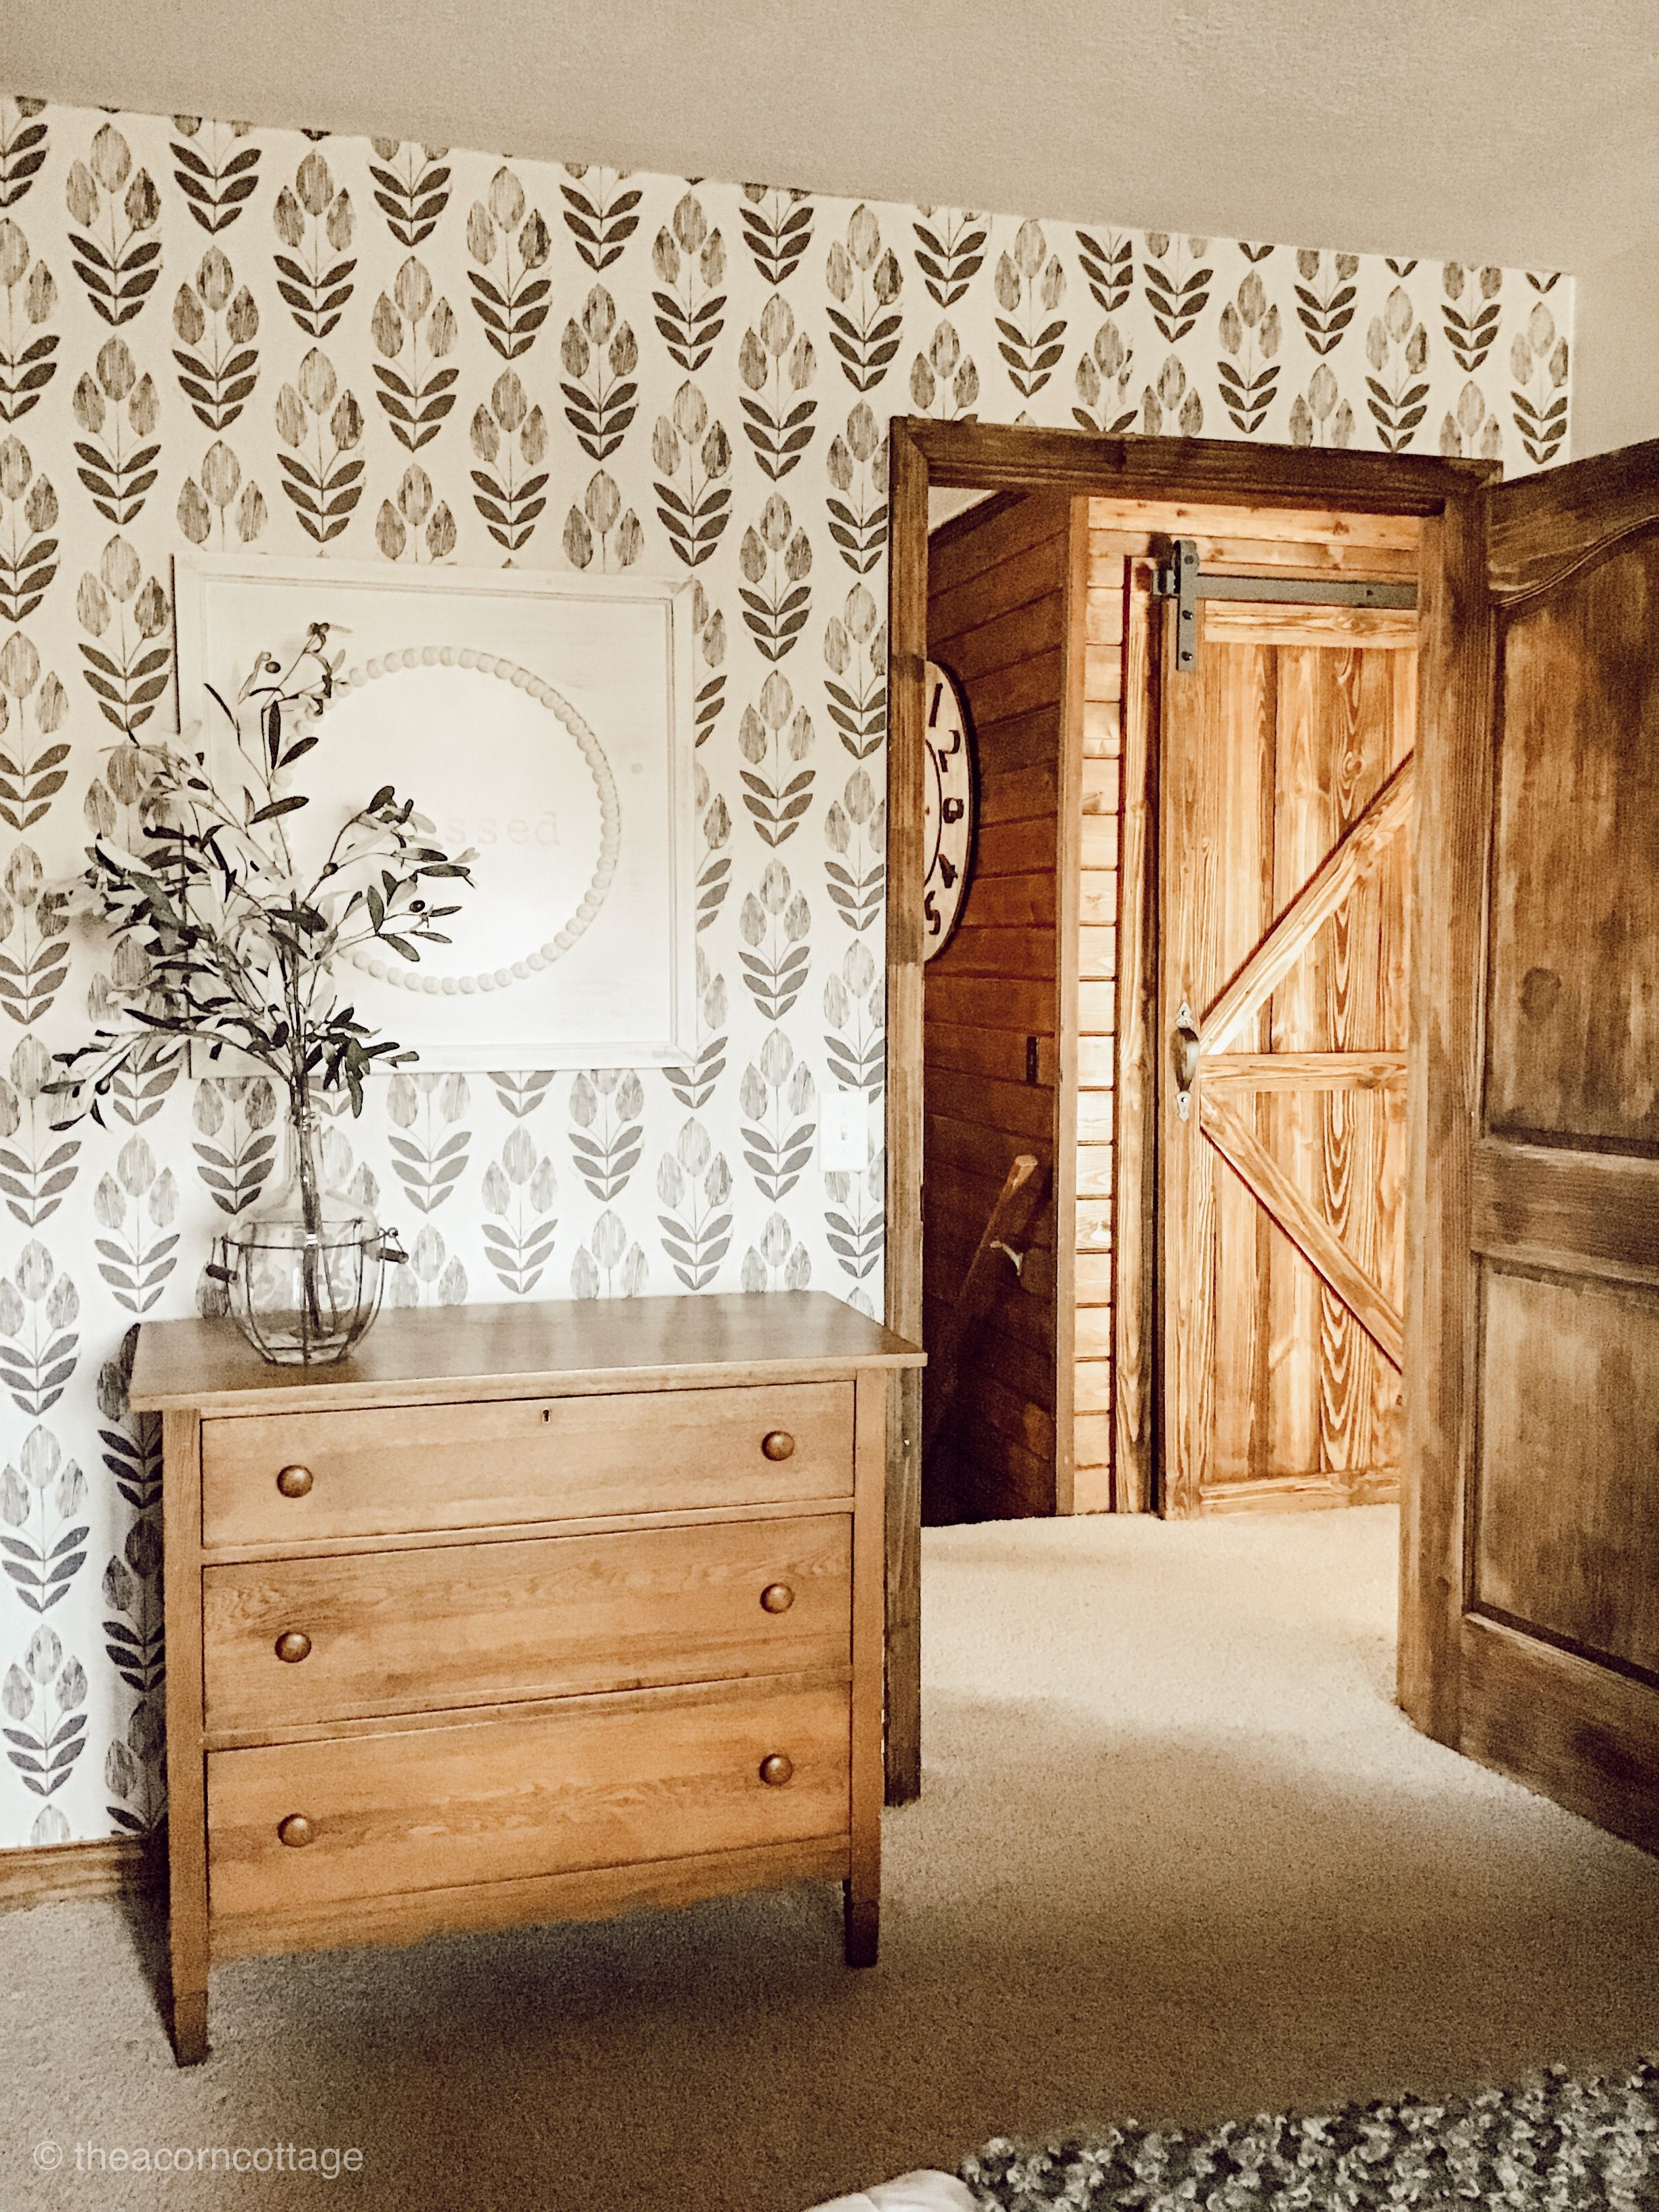 Fabulous peel and stick wallpaper farmhouse style at its